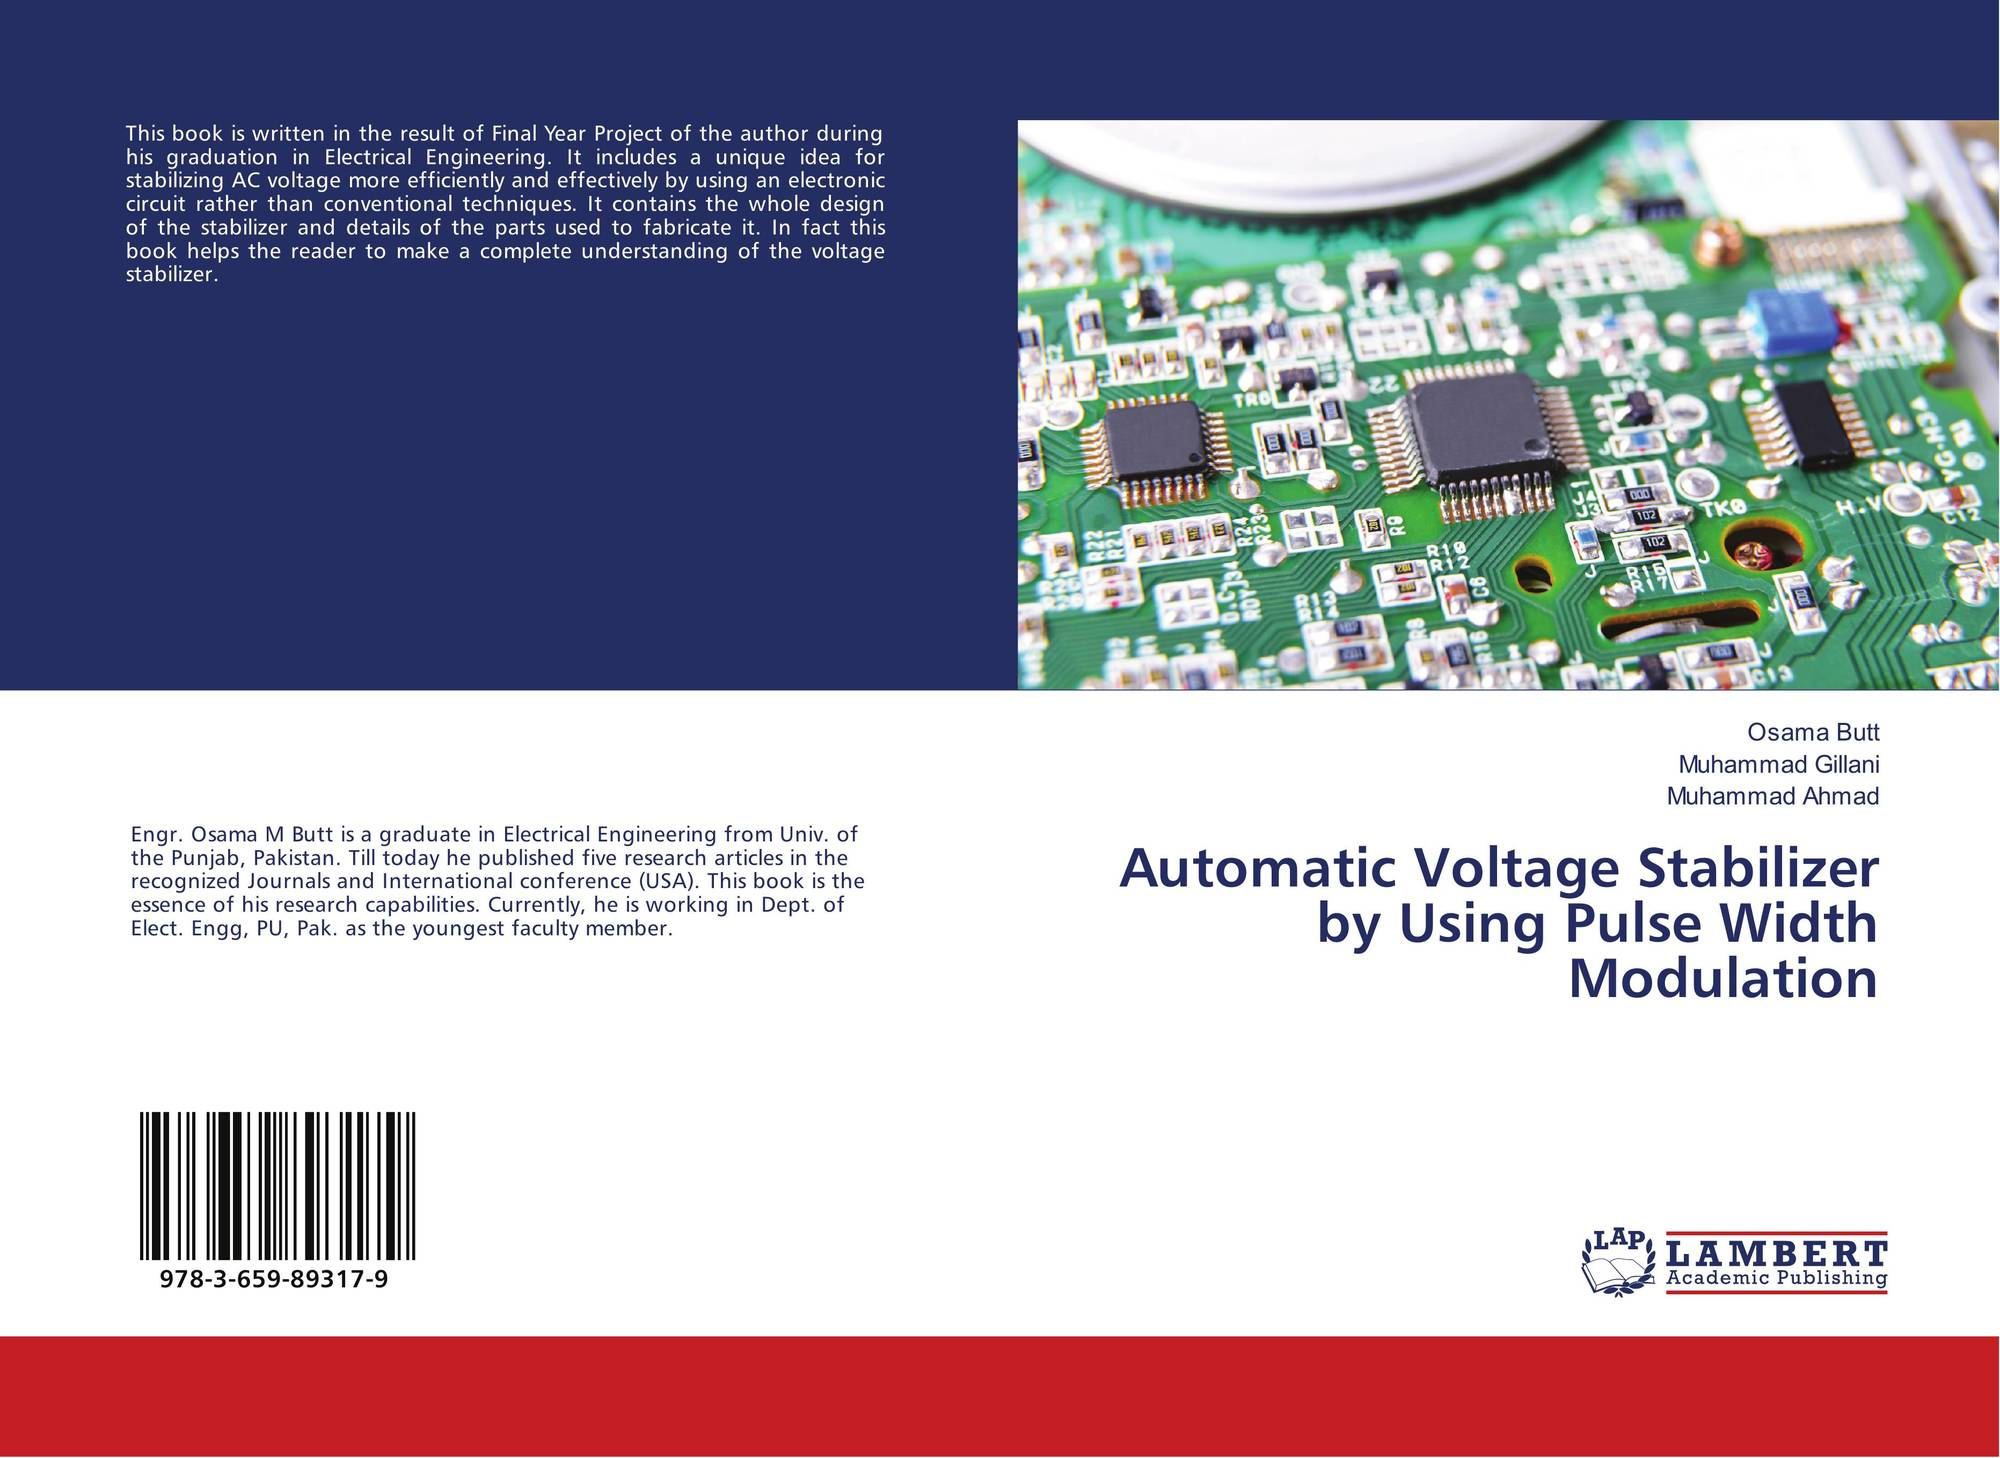 Search Results For Osama Al Saffar Understanding Electronic Circuit Bookcover Of Automatic Voltage Stabilizer By Using Pulse Width Modulation